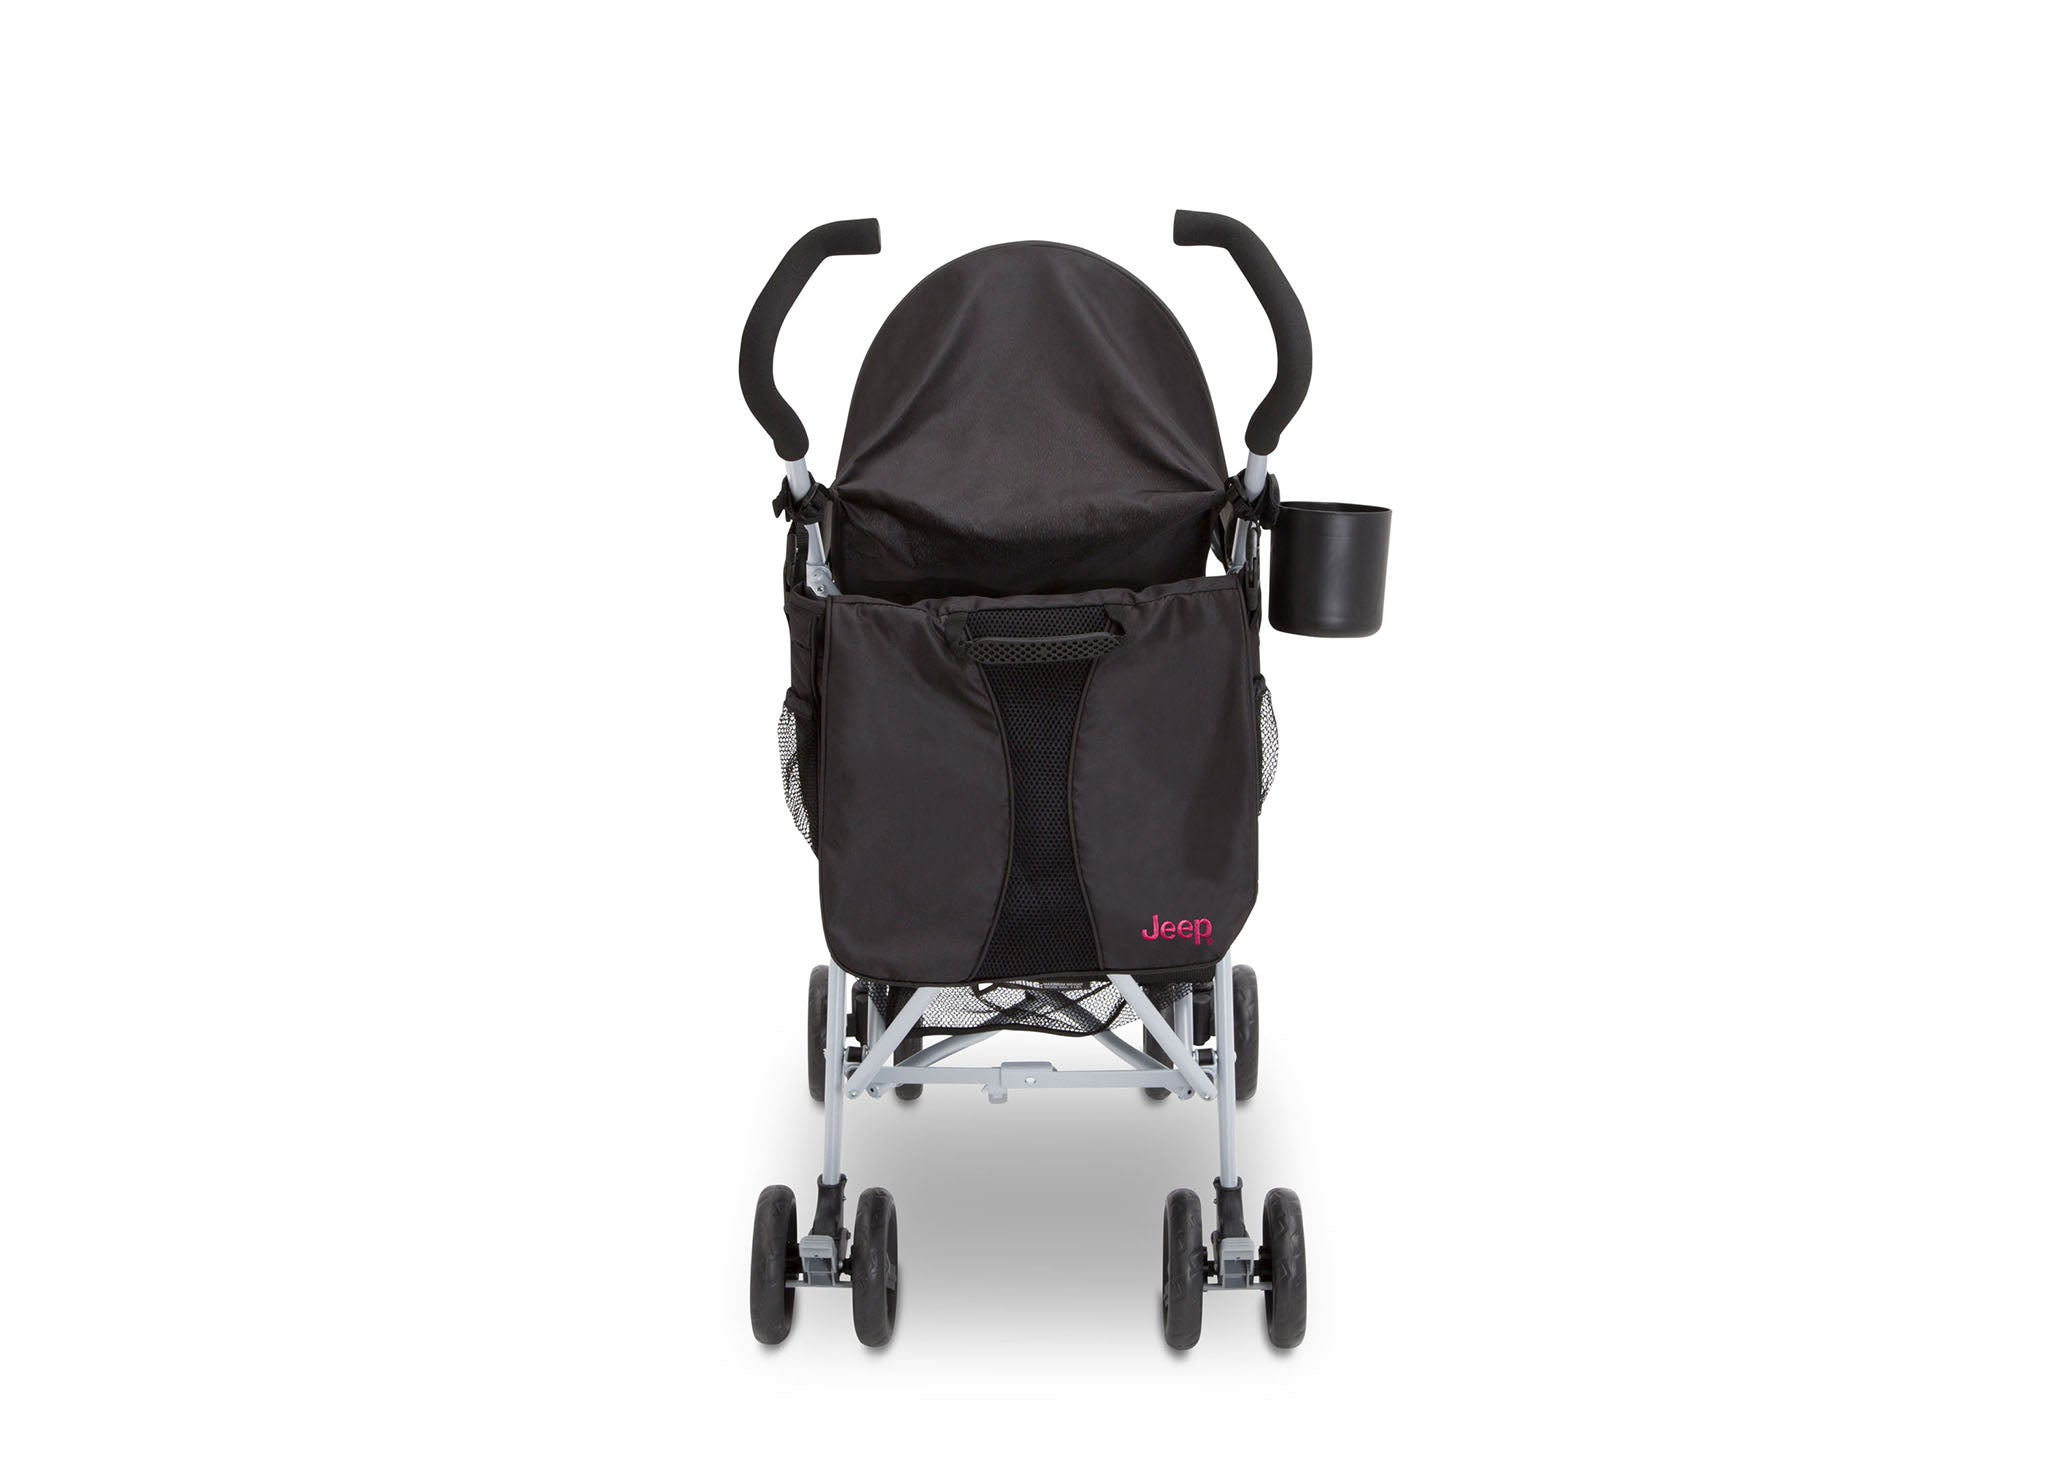 Jeep North Star Stroller by Delta Children, Black with Bright Burgundy (488), with Parent cup holder and easy-grip, extra-long foam handles